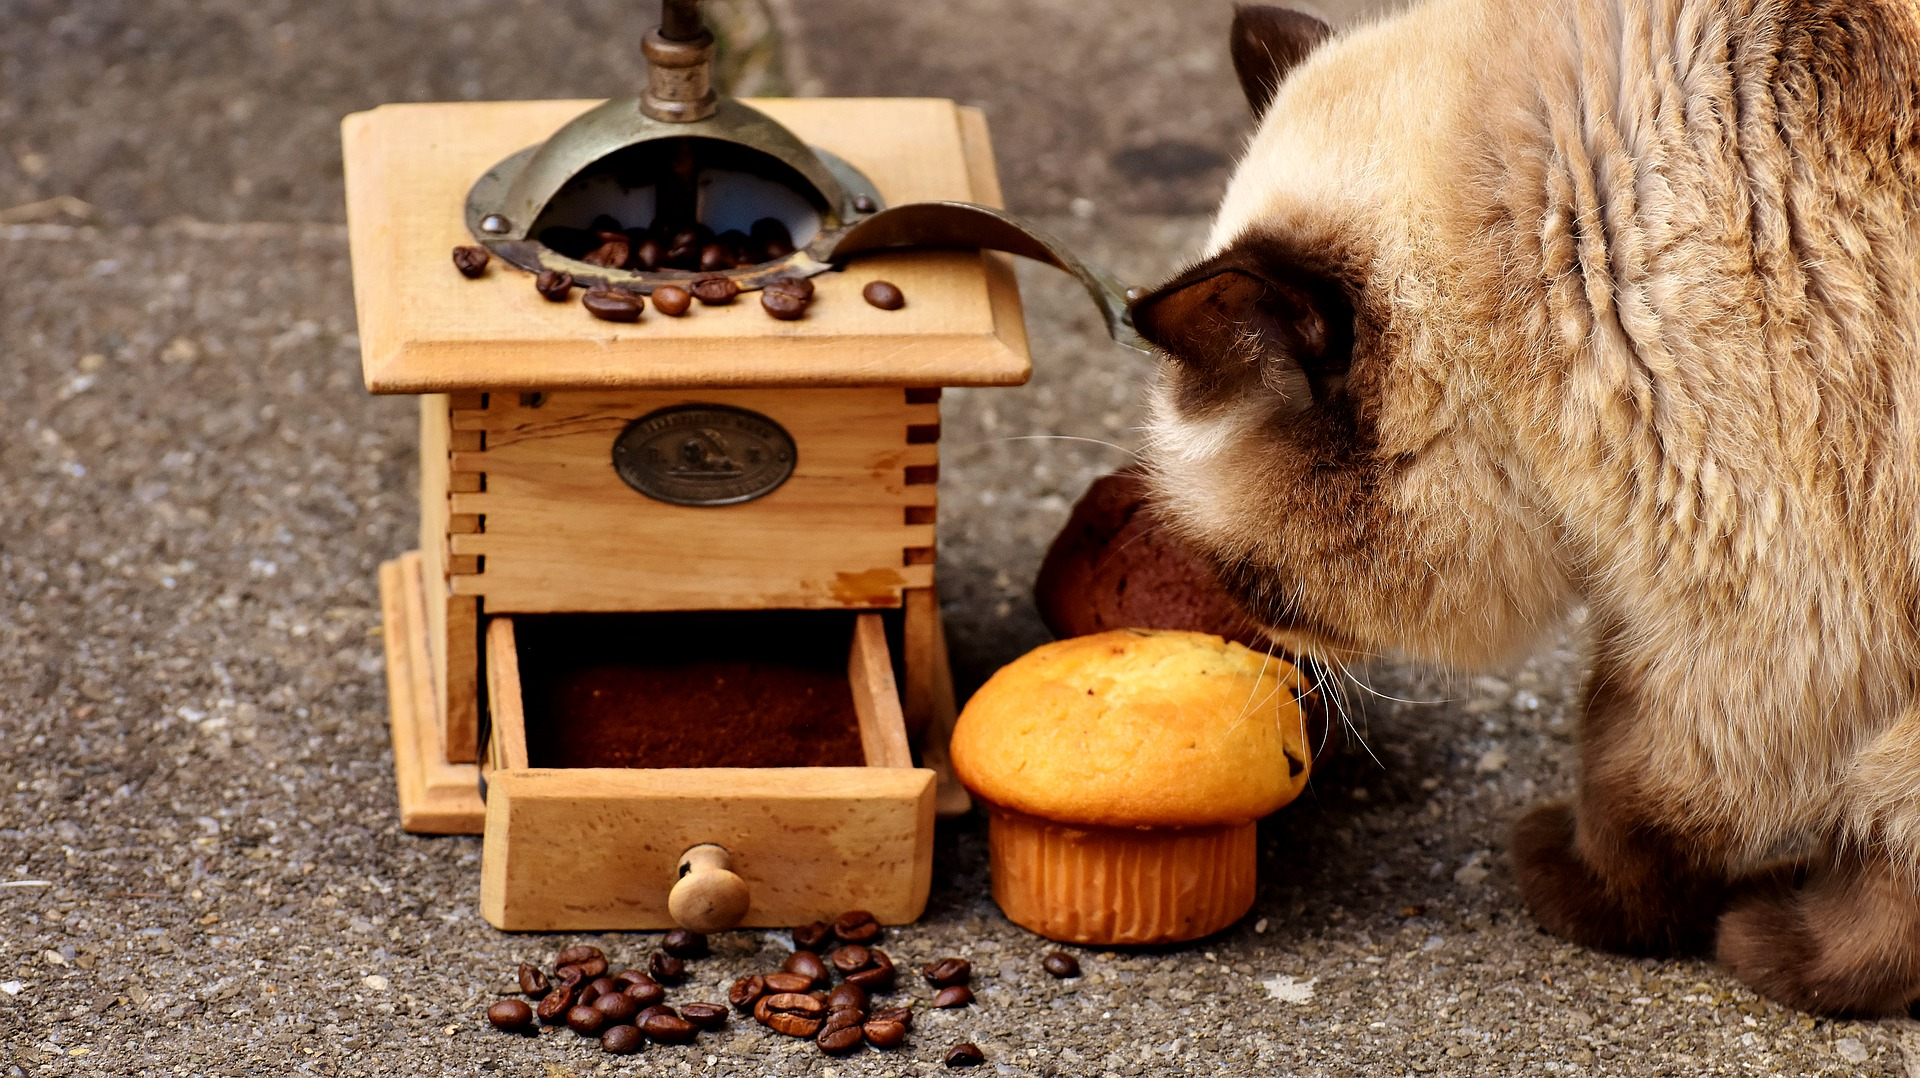 top kitty no-no's: cat eating sweets and coffee grains